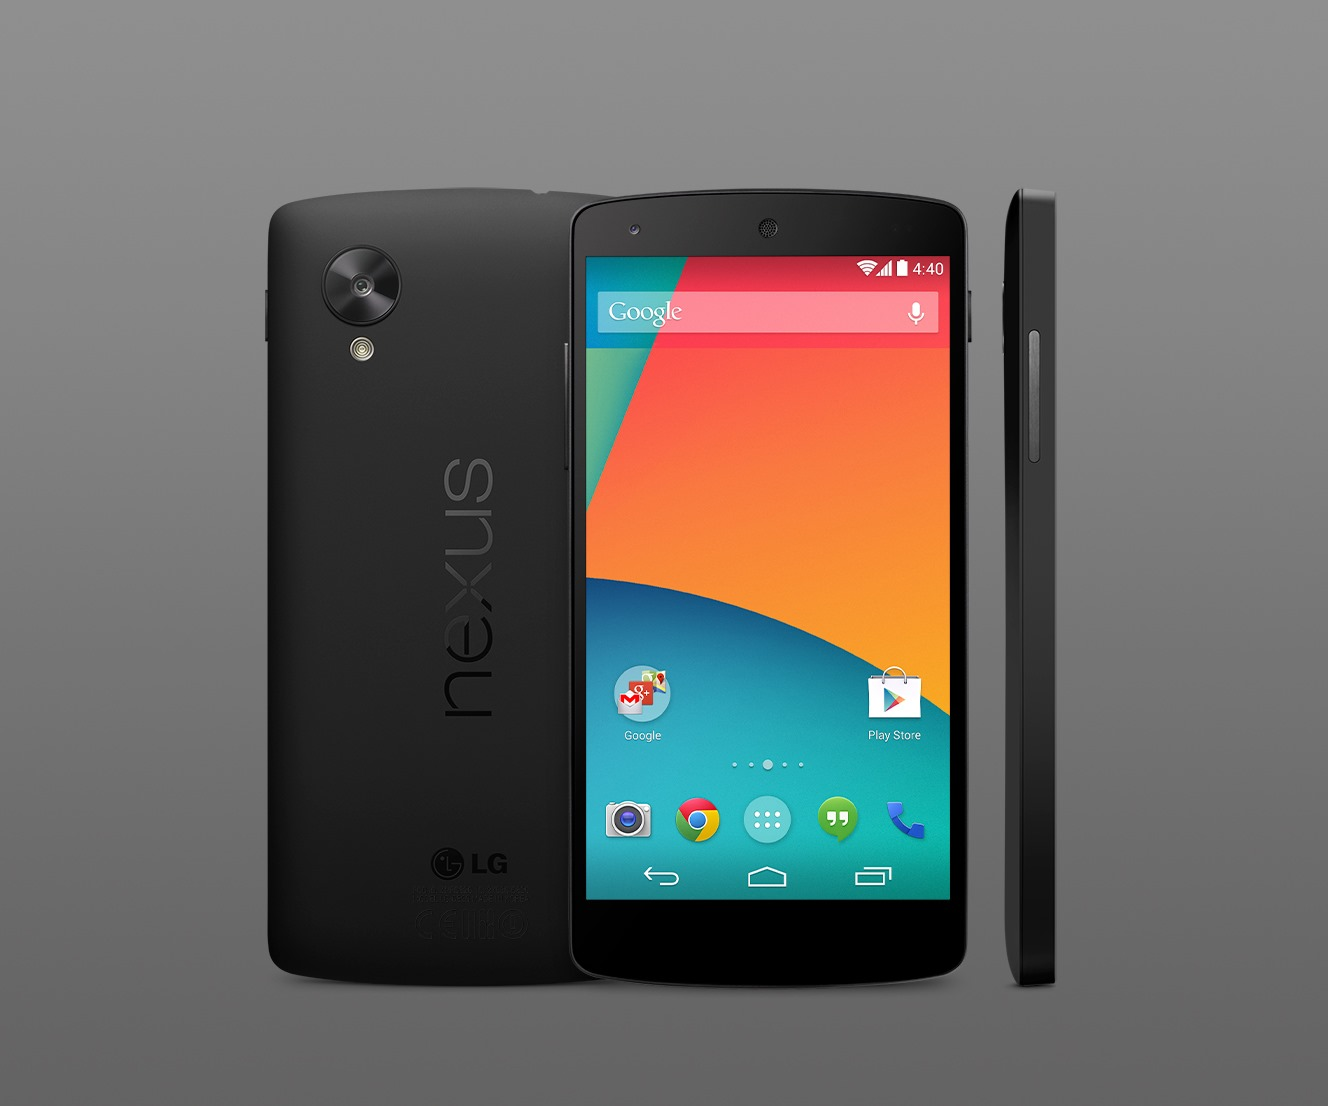 Google: There Will Not Be Another Nexus One, The Highlight of The Week